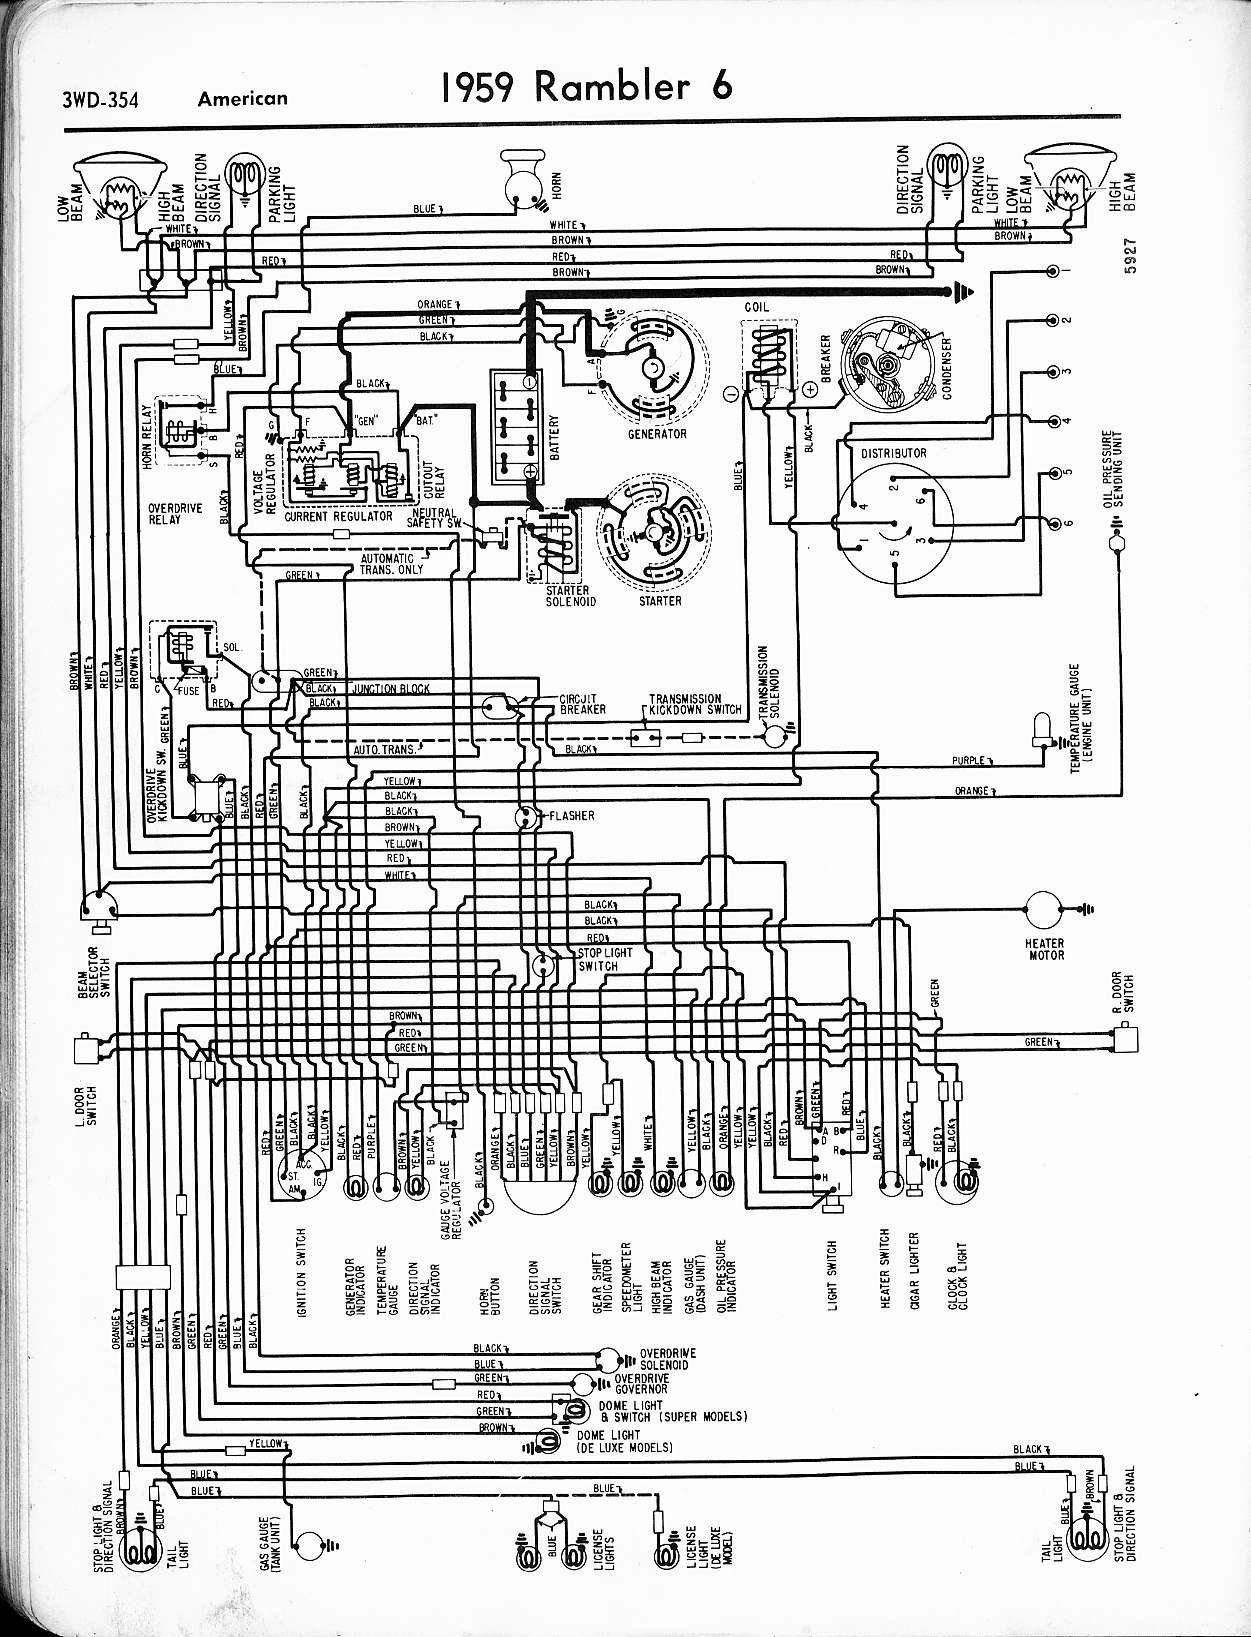 Enjoyable Clic Car Wiring Harness Wiring Diagram Wiring Cloud Inamadienstapotheekhoekschewaardnl